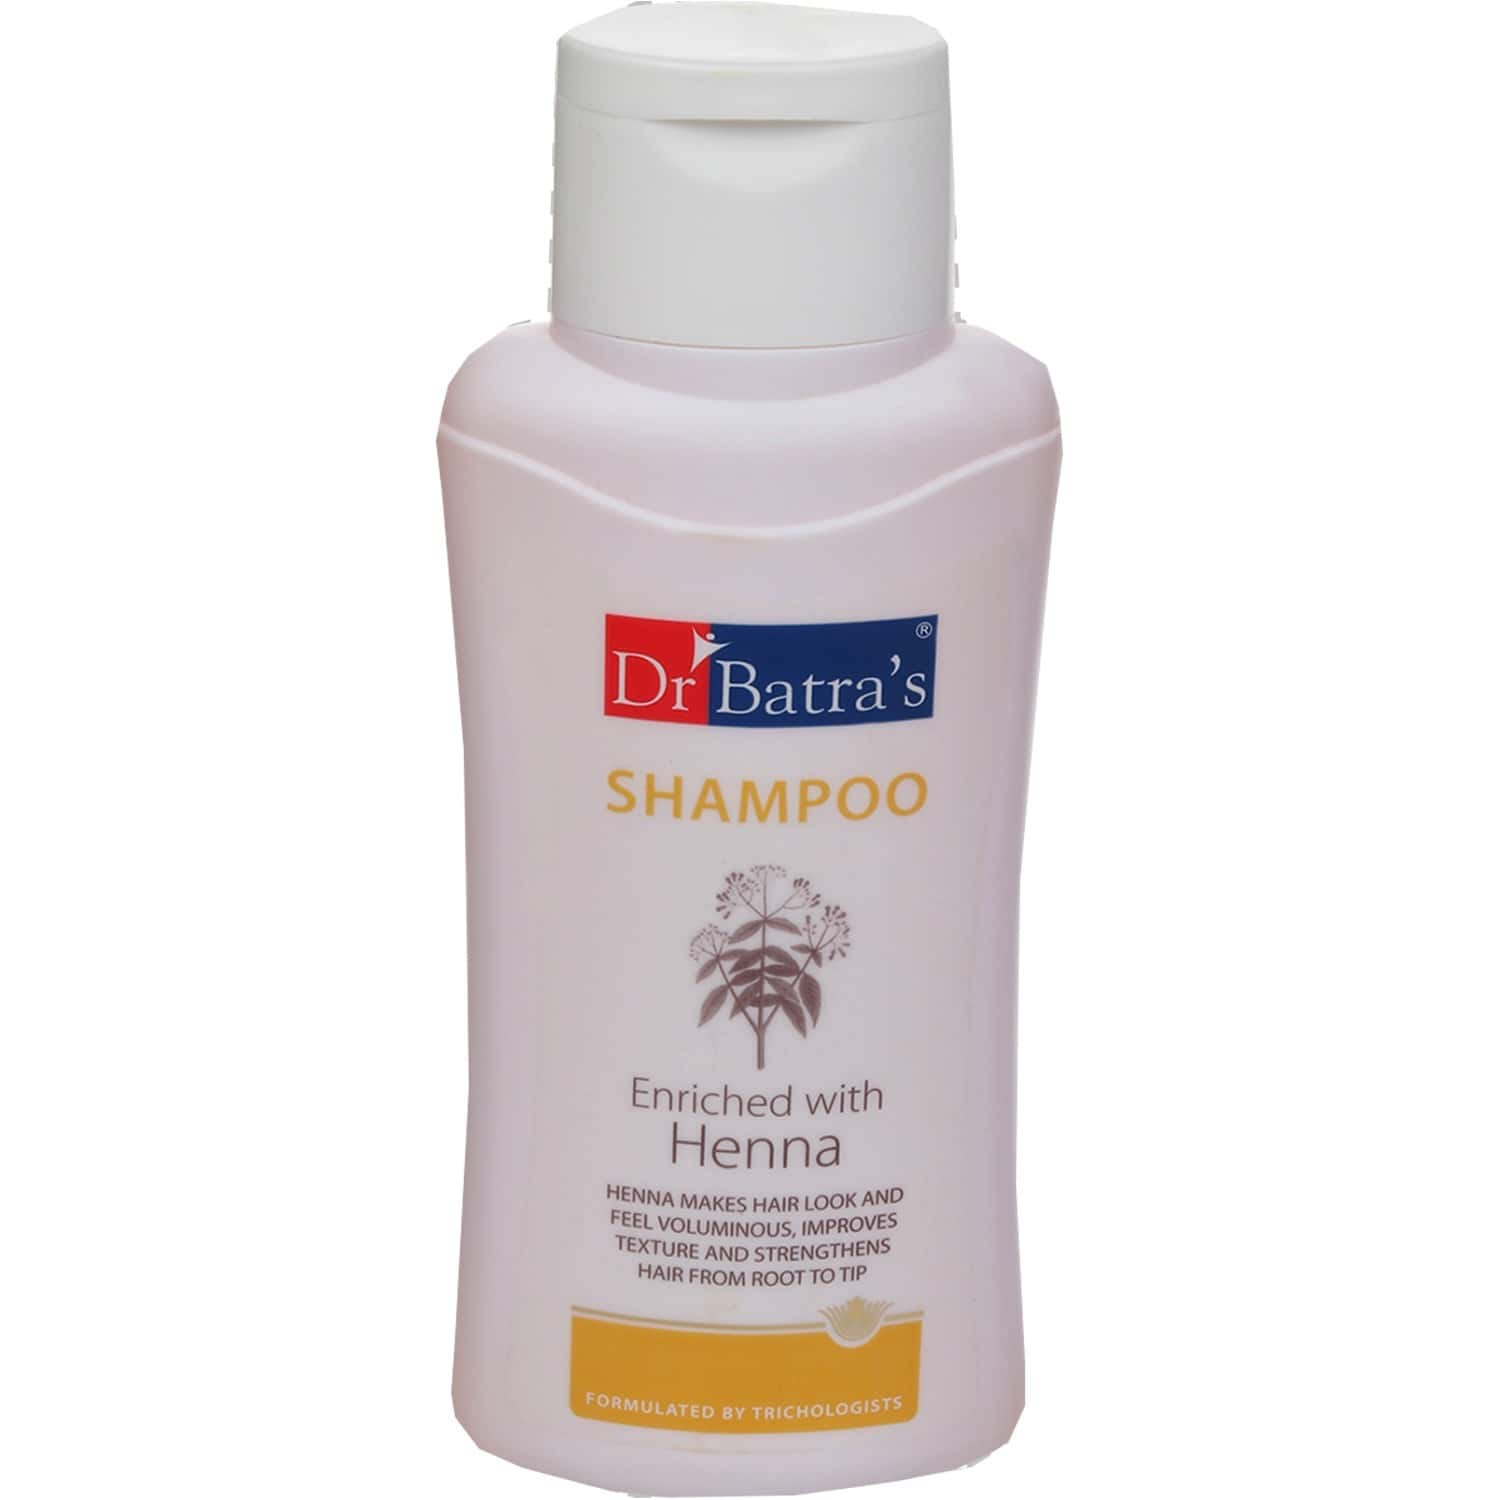 Dr Batra's Shampoo Enriched With Henna - 500 Ml